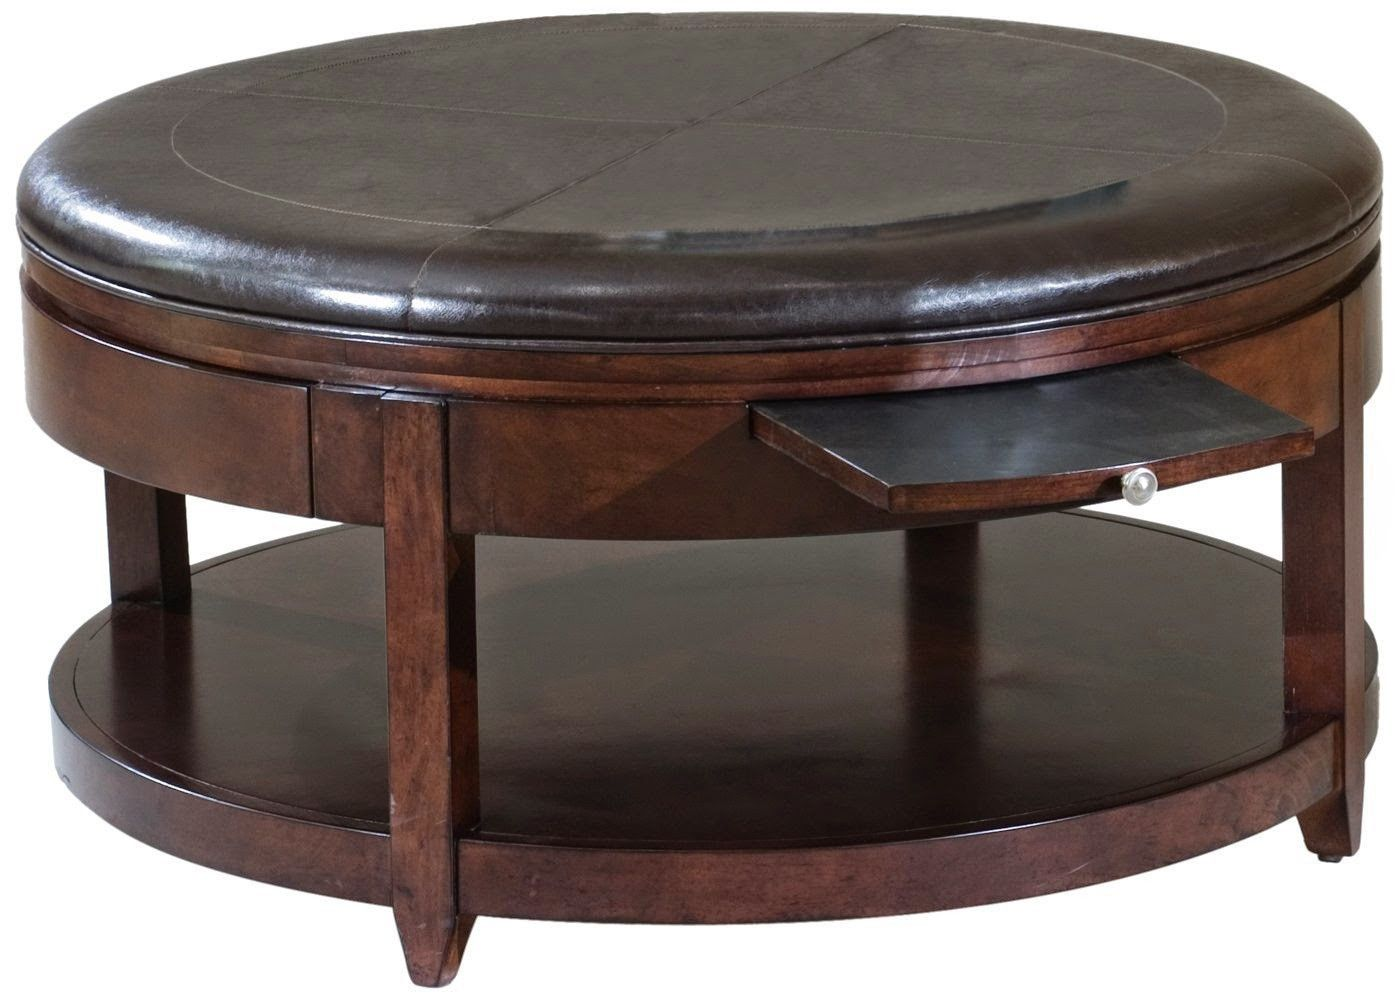 99 Large Round Leather Ottoman Coffee Table Best Bedroom Furniture Chec Round Ottoman Coffee Table Leather Ottoman Coffee Table Storage Ottoman Coffee Table [ 1000 x 1399 Pixel ]